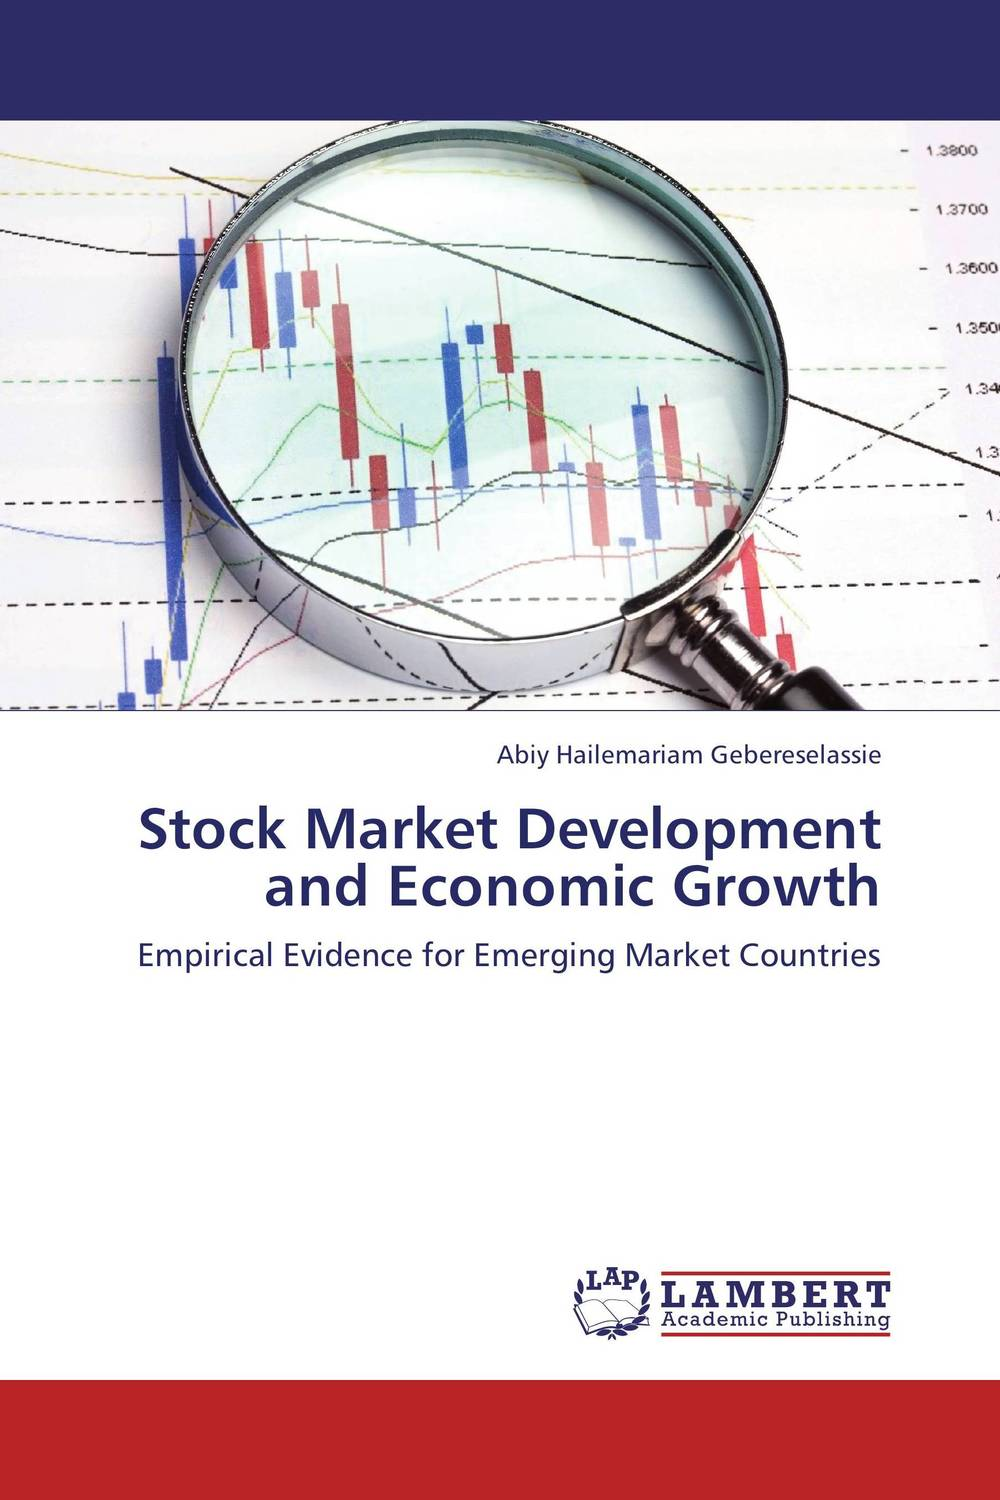 Stock Market Development and Economic Growth tobias olweny and kenedy omondi the effect of macro economic factors on stock return volatility at nse